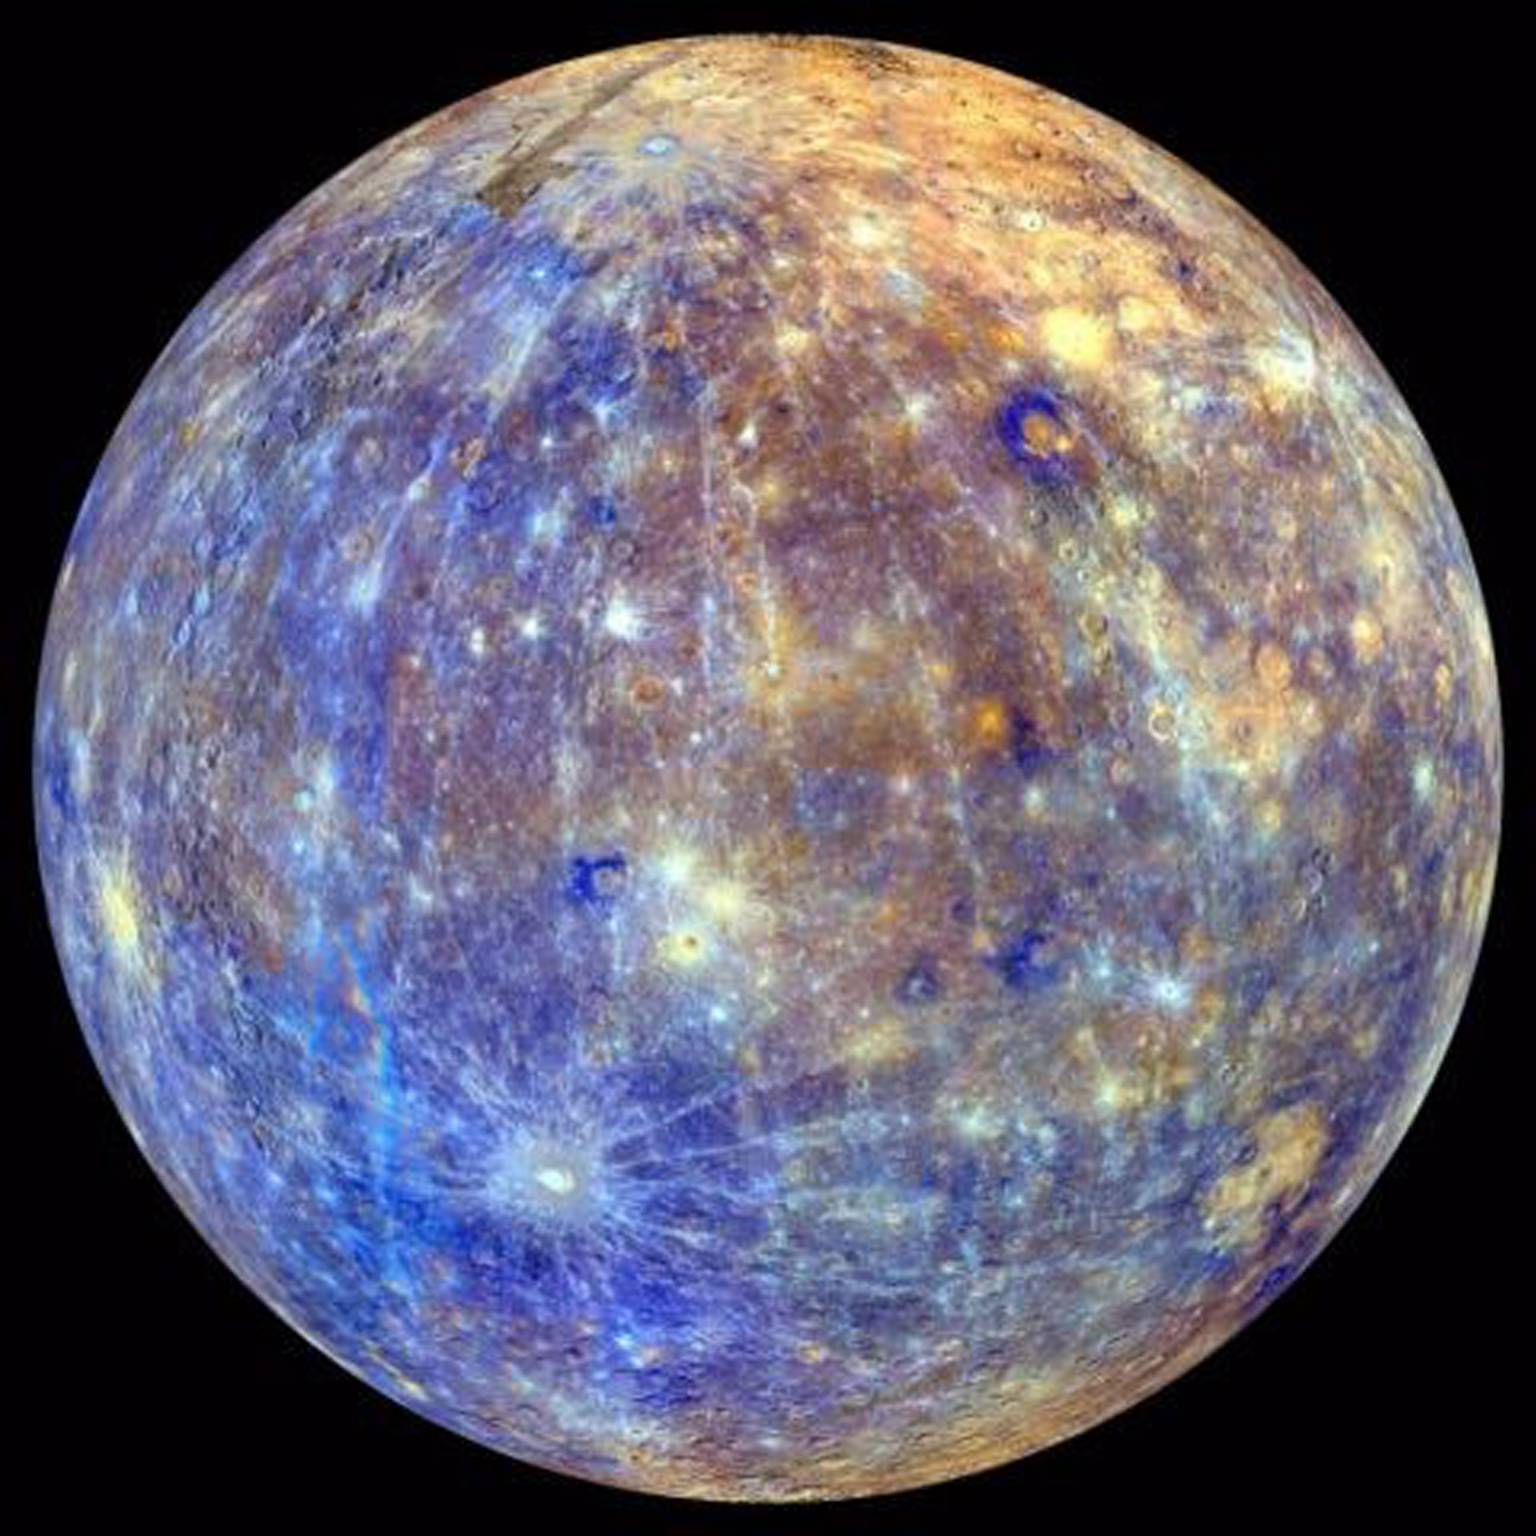 http://www.nasa.gov/sites/default/files/thumbnails/image/mercury.jpg